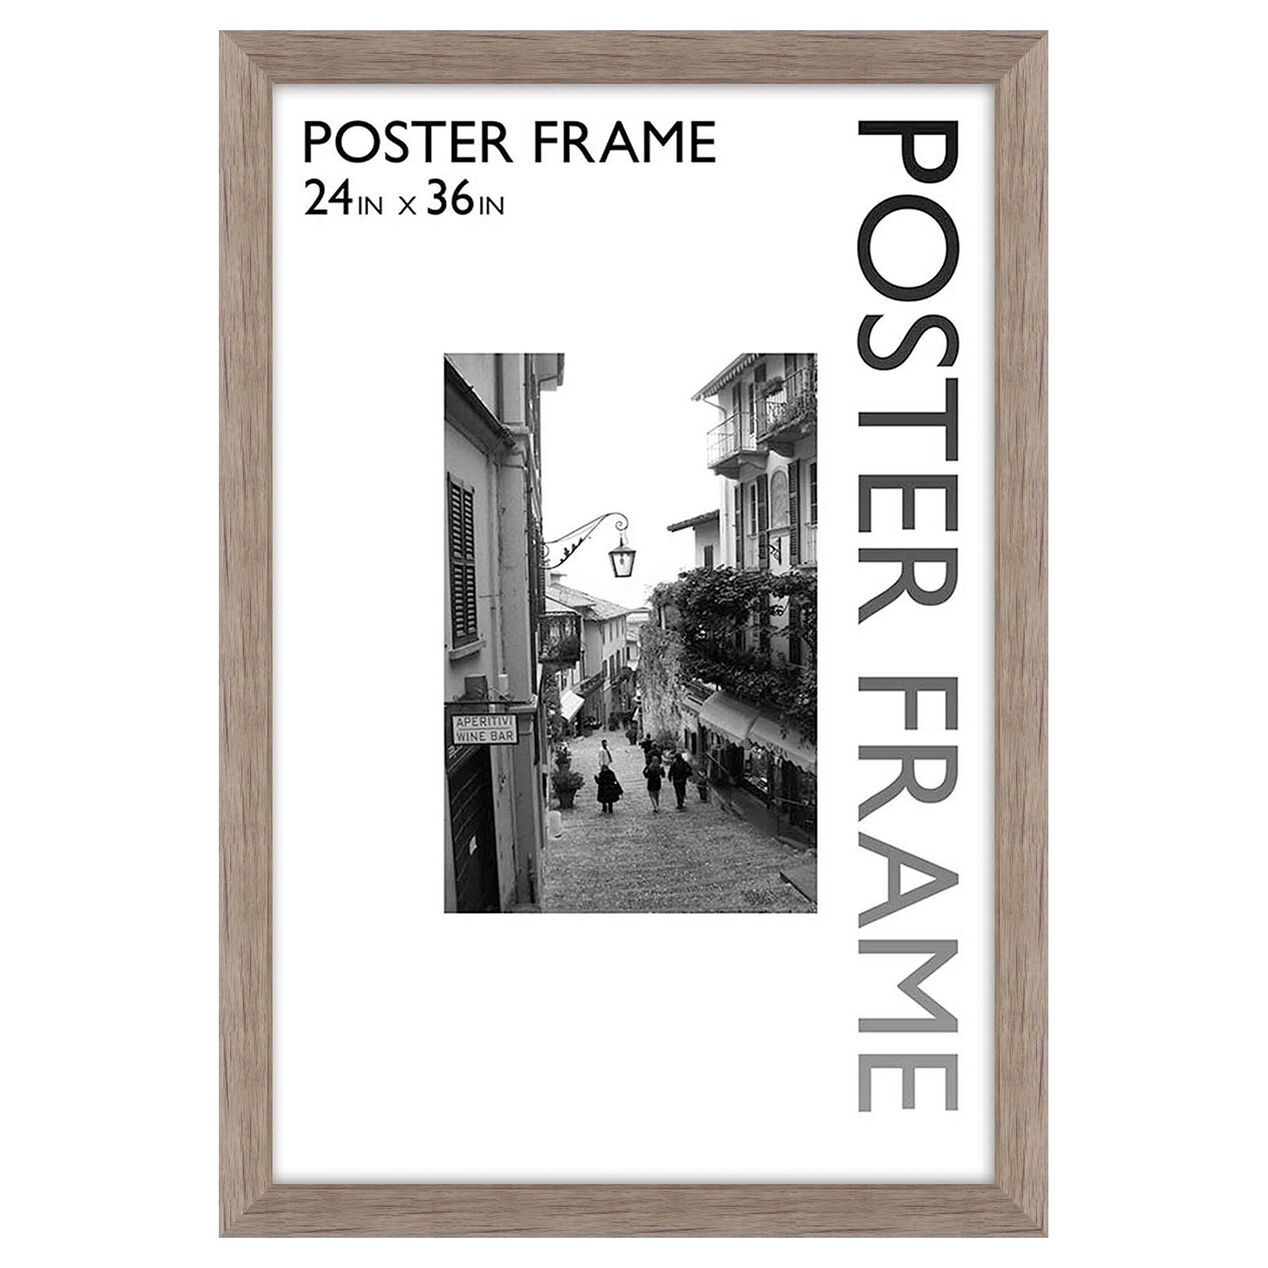 24 x 36 in gray wood grain poster frame